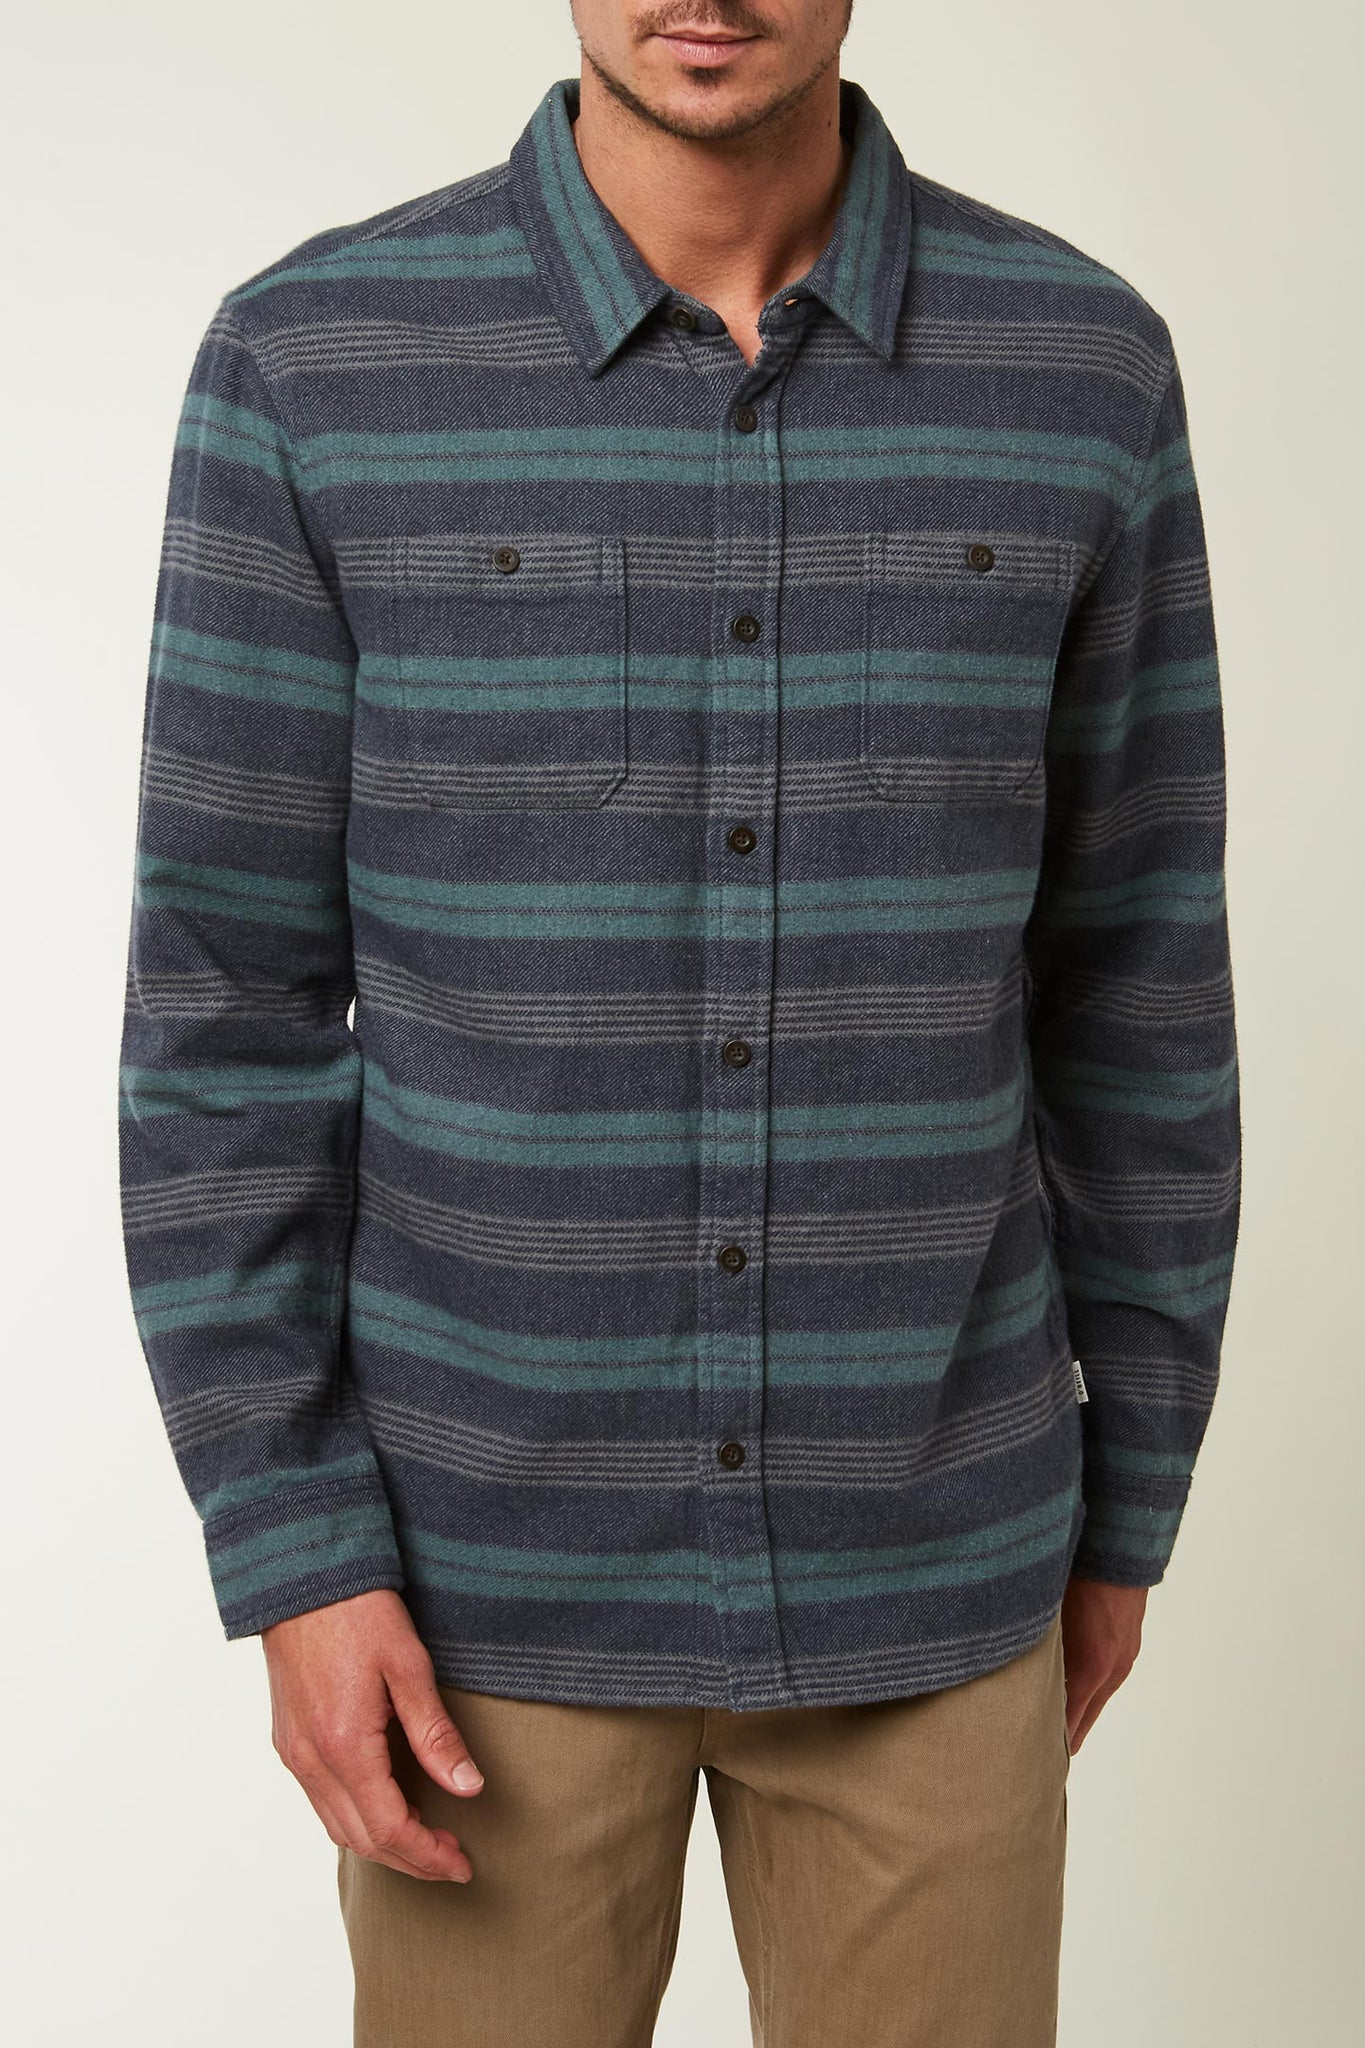 Jack O'Neill Blanket Long Sleeve Shirt - Navy | O'Neill